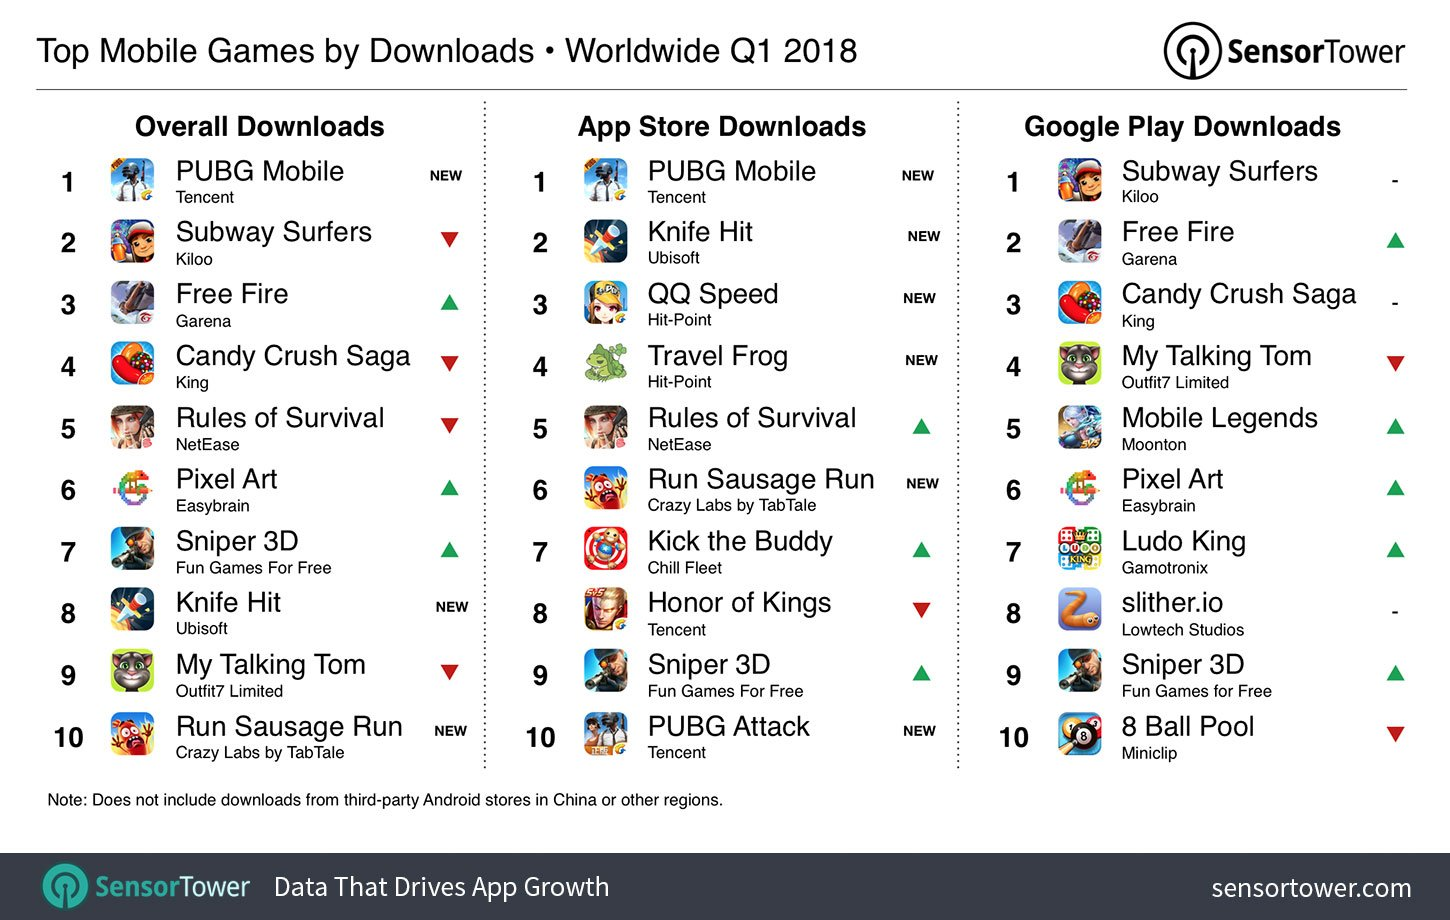 Gamesindustry On Twitter Pubg Most Downloaded Mobile Game Last Quarter But Revenue Flags Https T Co Mncsyazcvc Sensor Tower Data Digest Mobile Game Downloads Up To 2 4 Billion On Ios And 7 23 Billion On Android